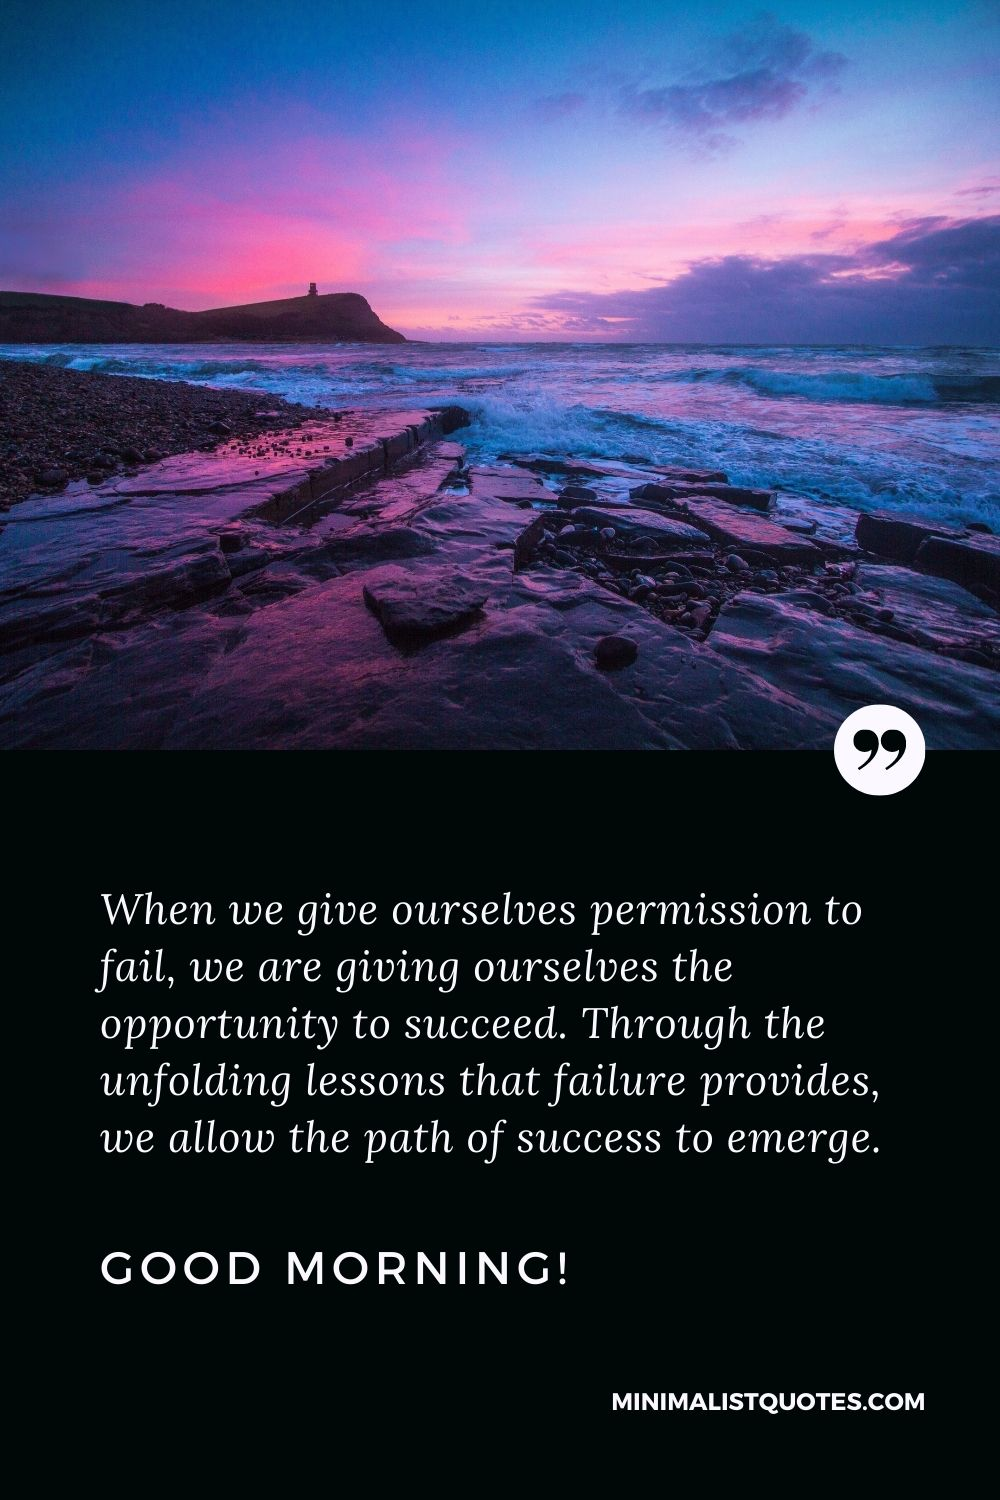 Good Morning Quote, Wish & Message With Image: When we give ourselves permission to fail, we are giving ourselves the opportunity to succeed. Through the unfolding lessons that failure provides, we allow the path of success to emerge. Good Morning!